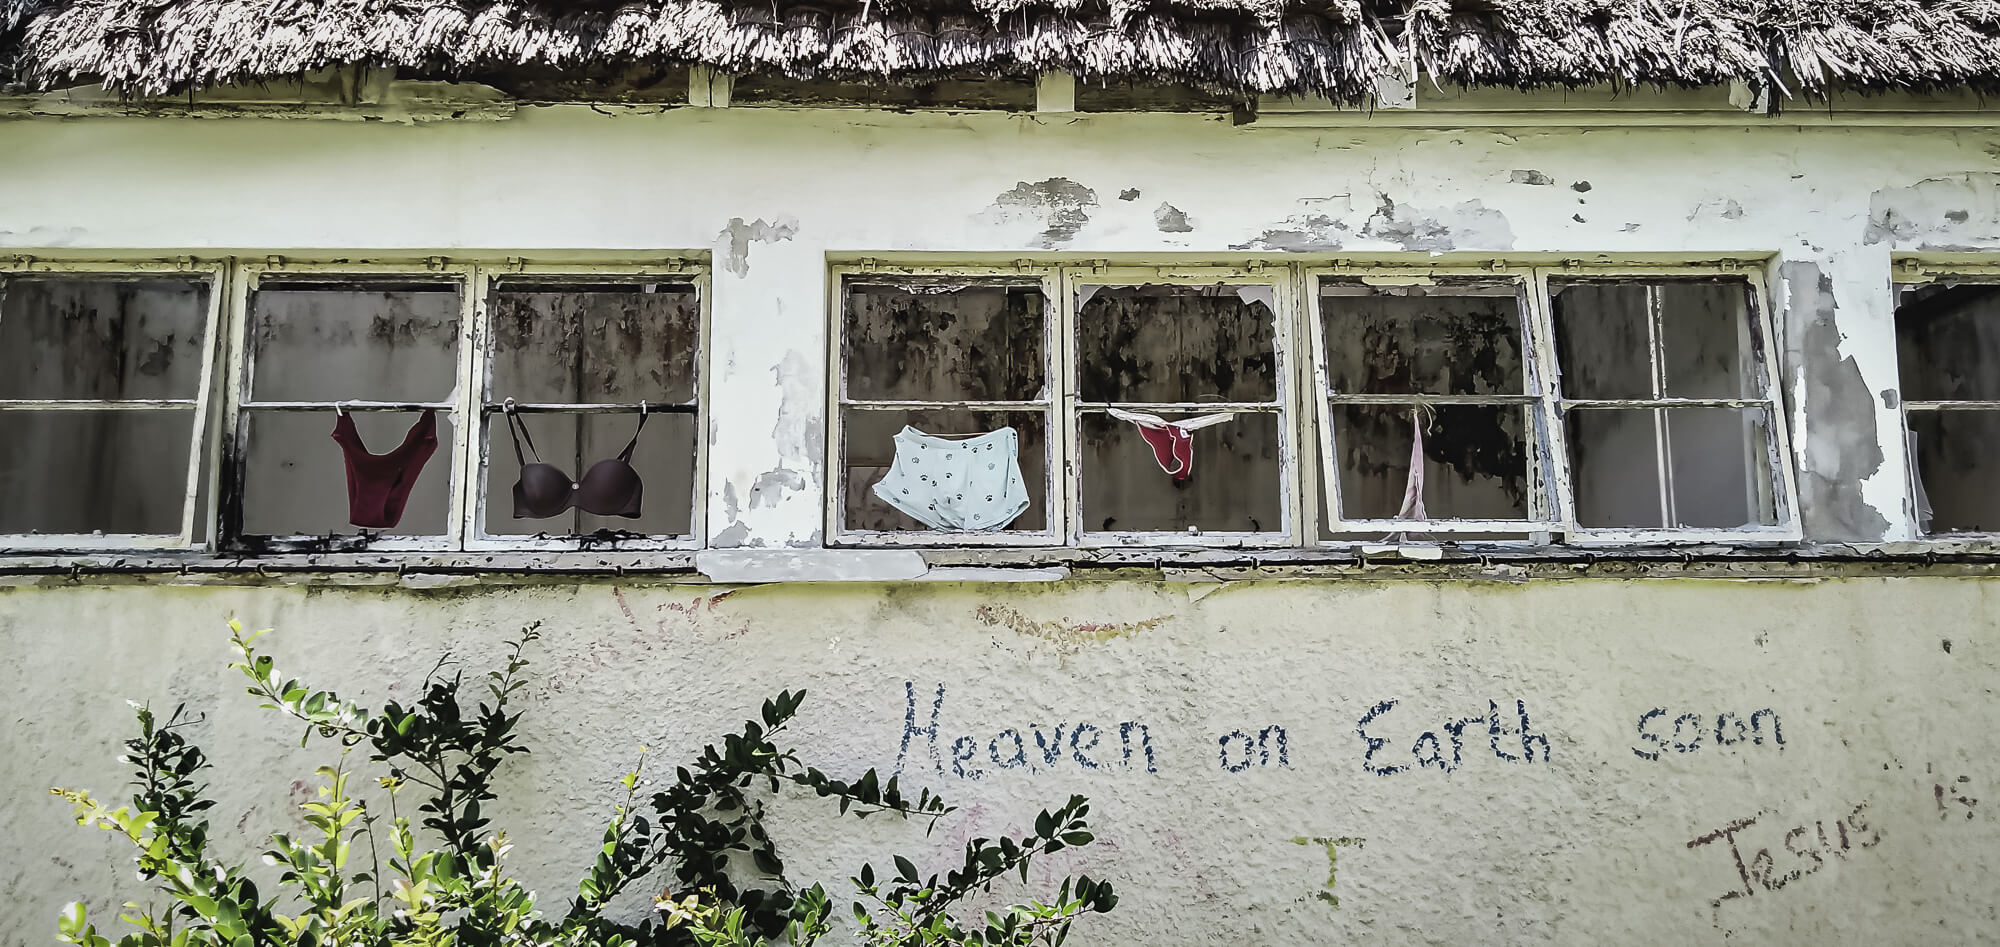 Abandonded building with underwear at a northern point of interest found in Mauritius